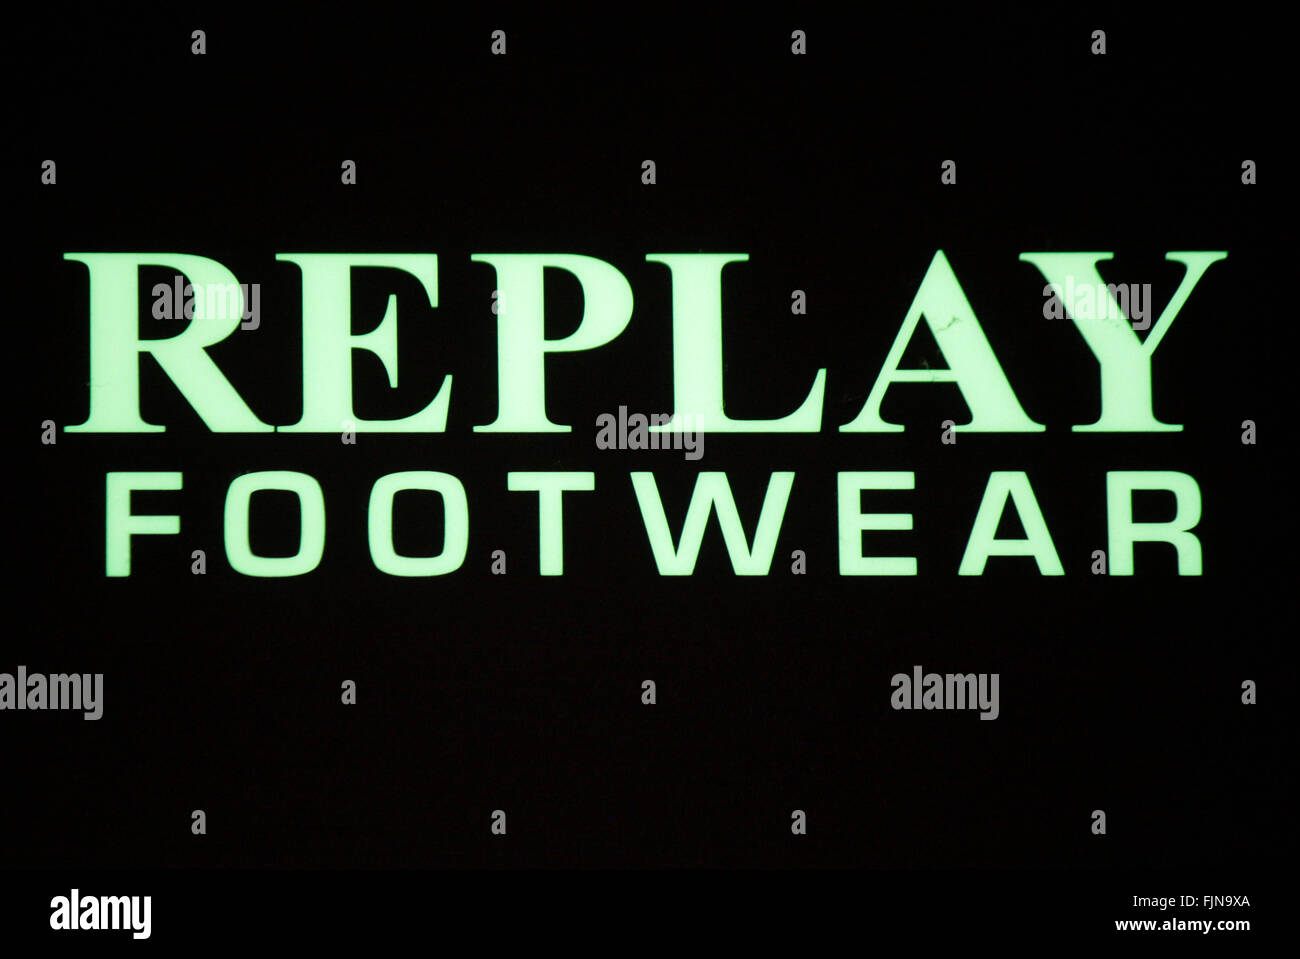 Markenname: 'Replay Footwear', Berlin. - Stock Image